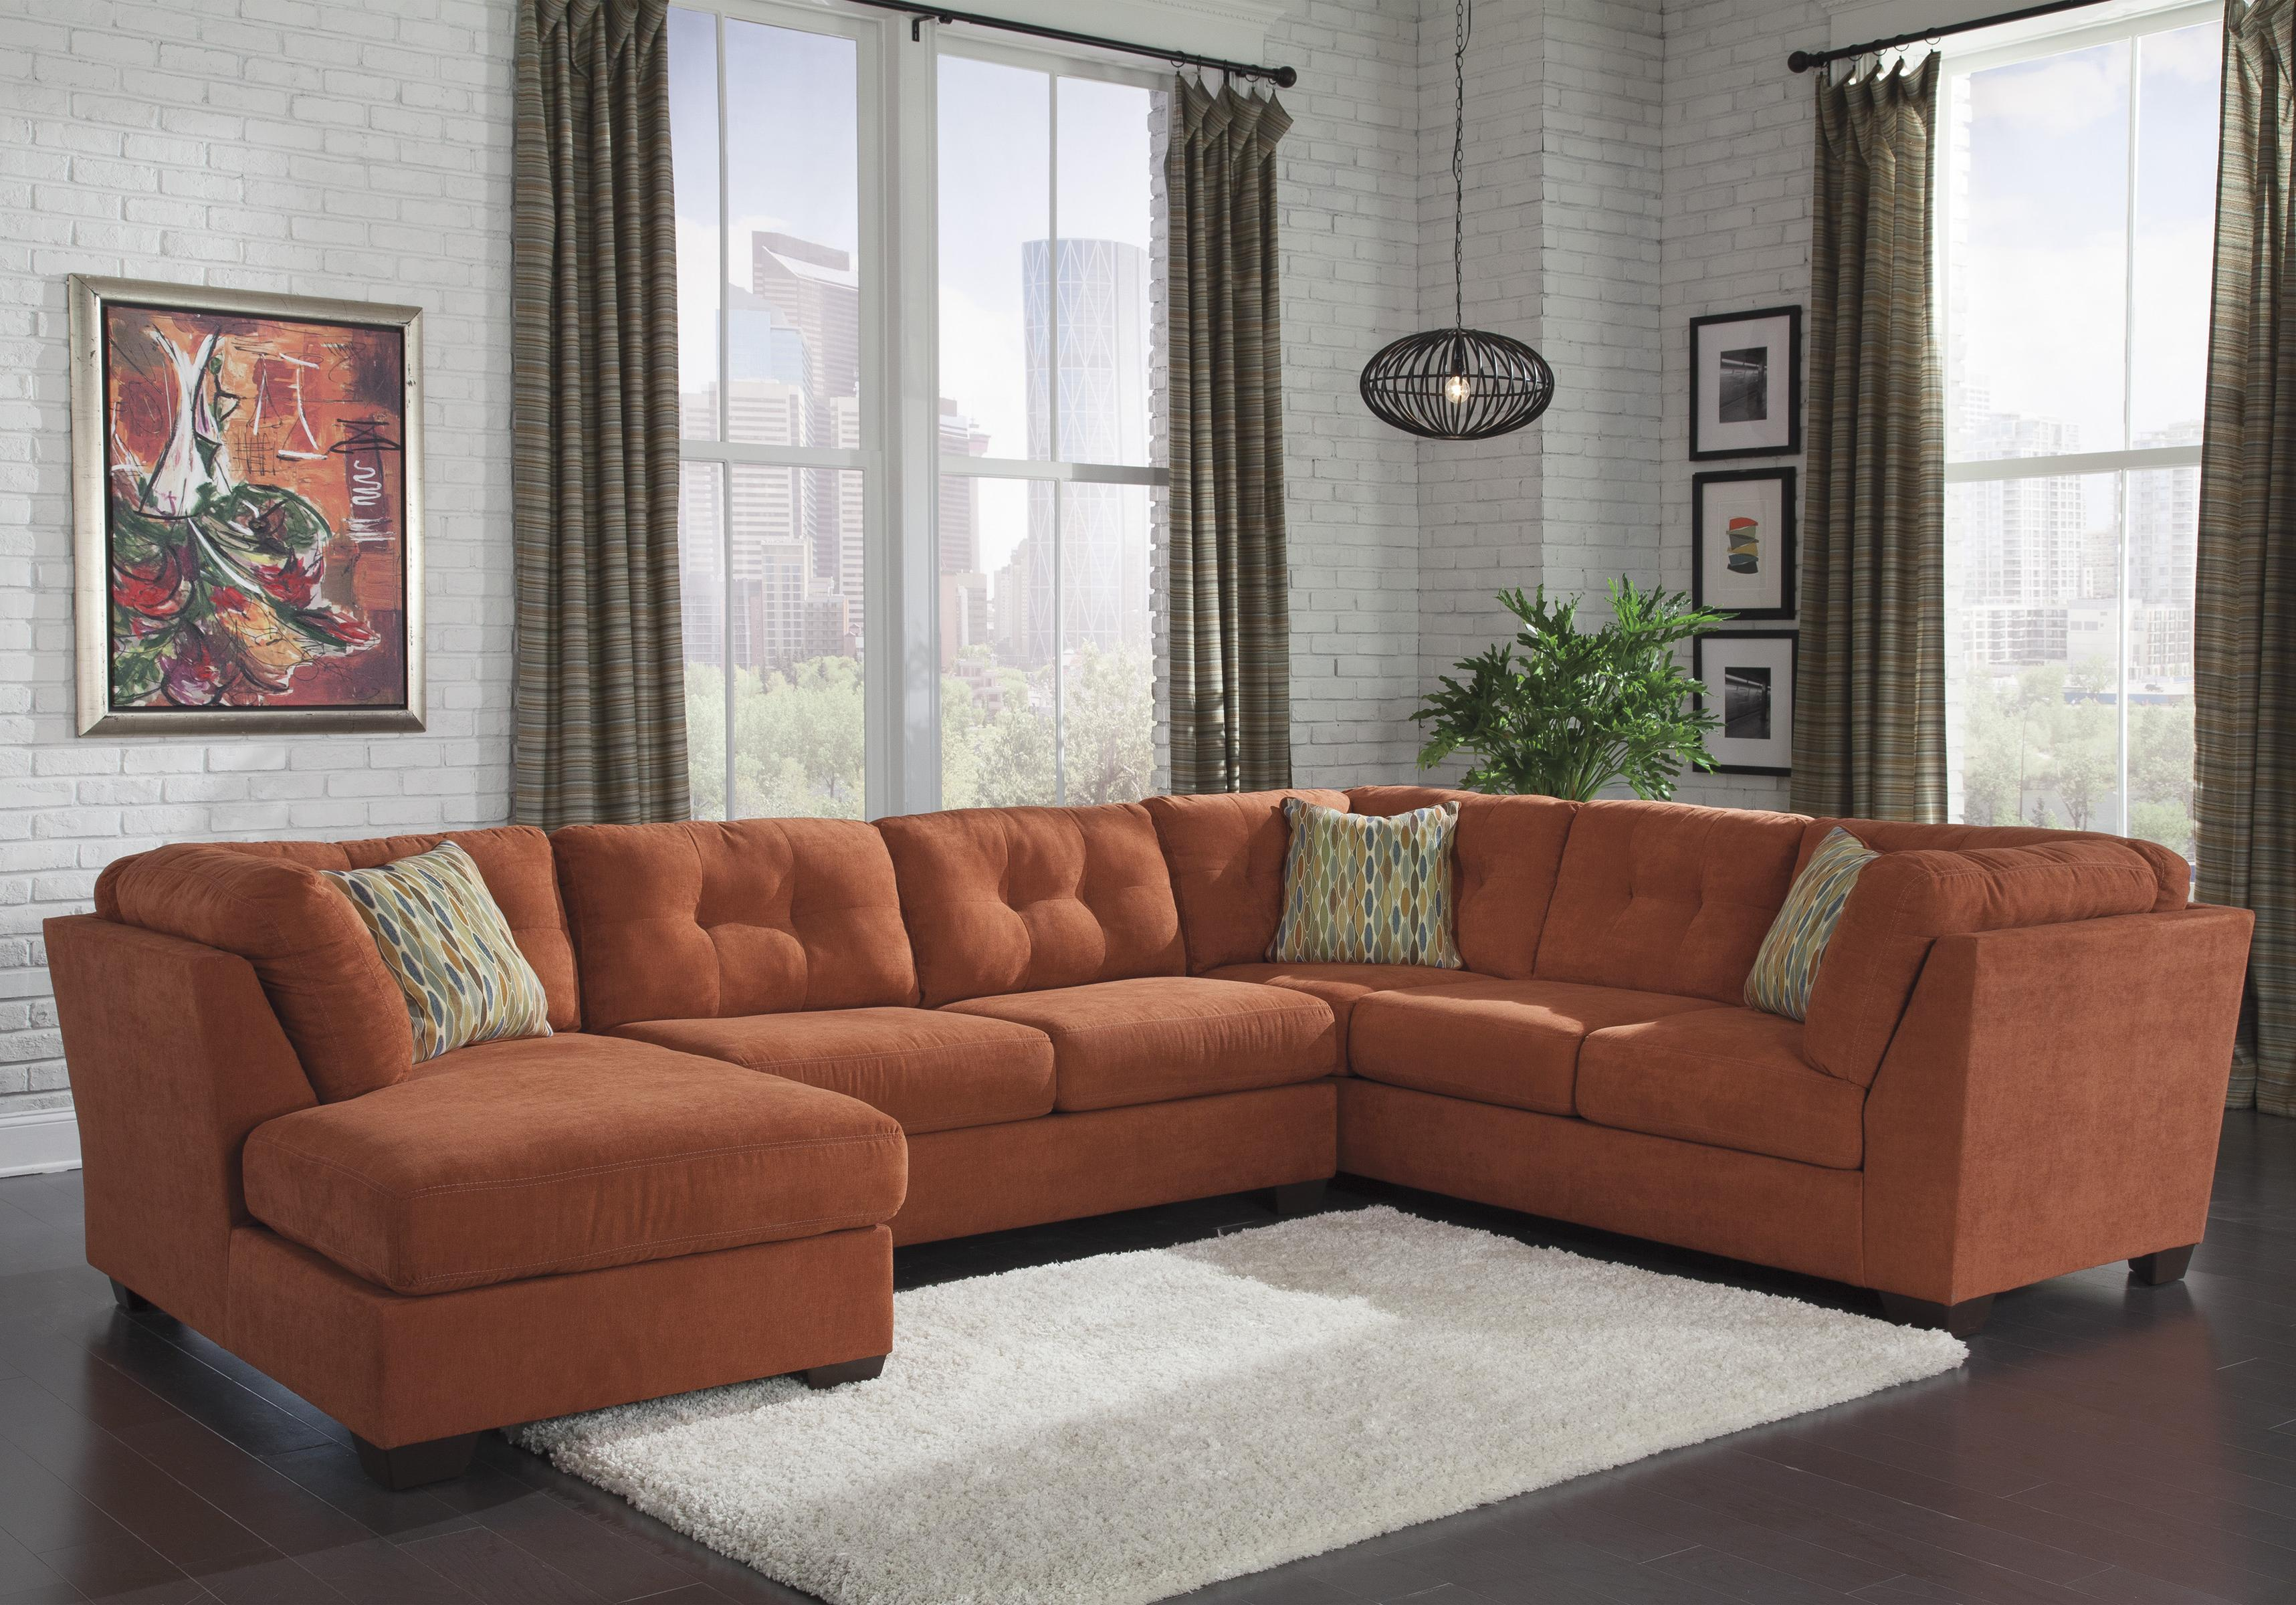 Ashley/Benchcraft Delta City - Rust 3-Piece Modular Sectional with Left Chaise - Item Number: 1970116+34+38